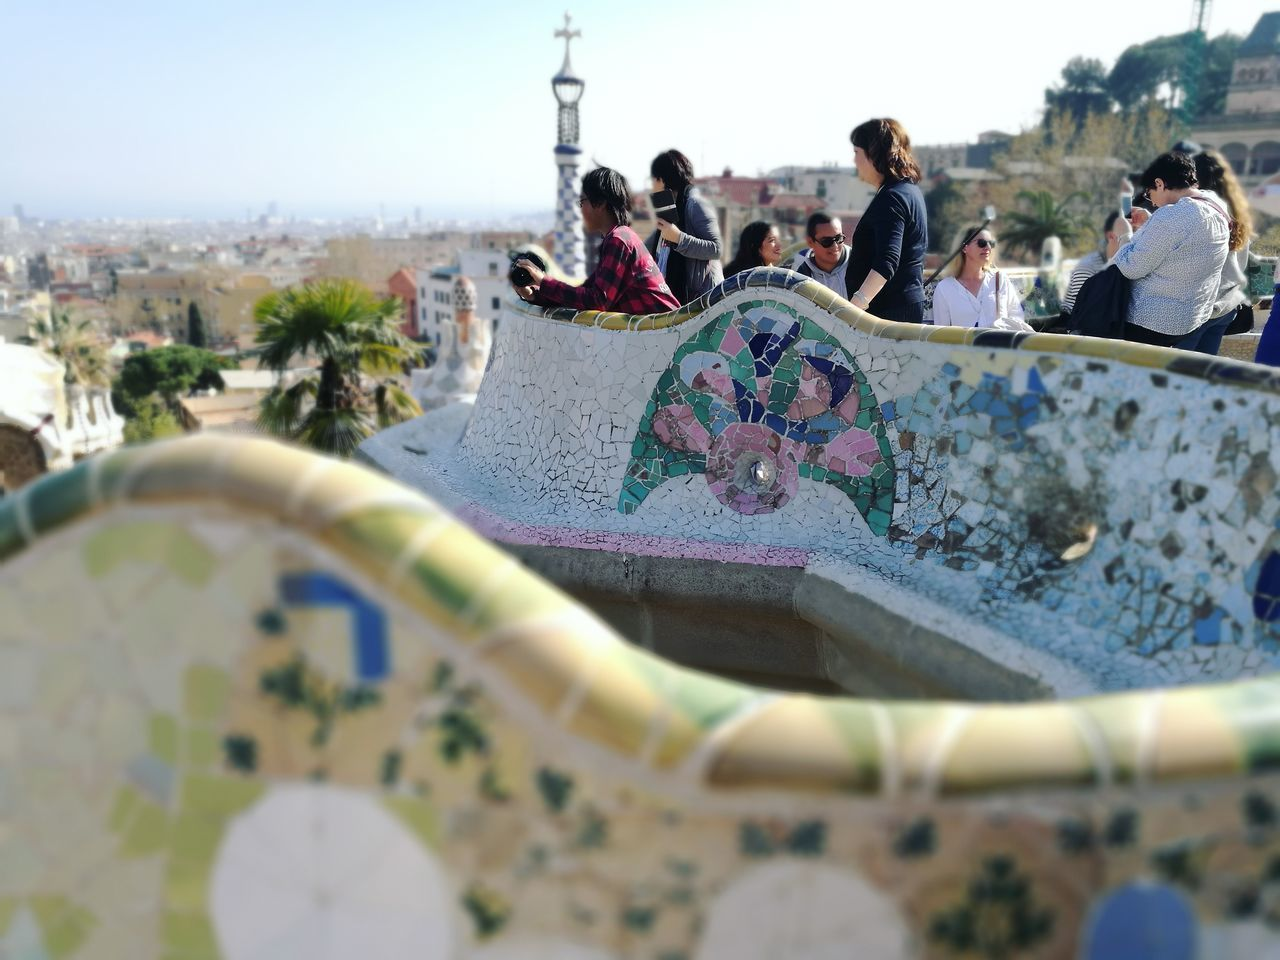 HuaweiP9 Travel Barcelona SPAIN Gaudi Architecture Art Mosaic Guell Monumental Zone Guell Park Building EyeEmNewHere Art Is Everywhere The Architect - 2017 EyeEm Awards